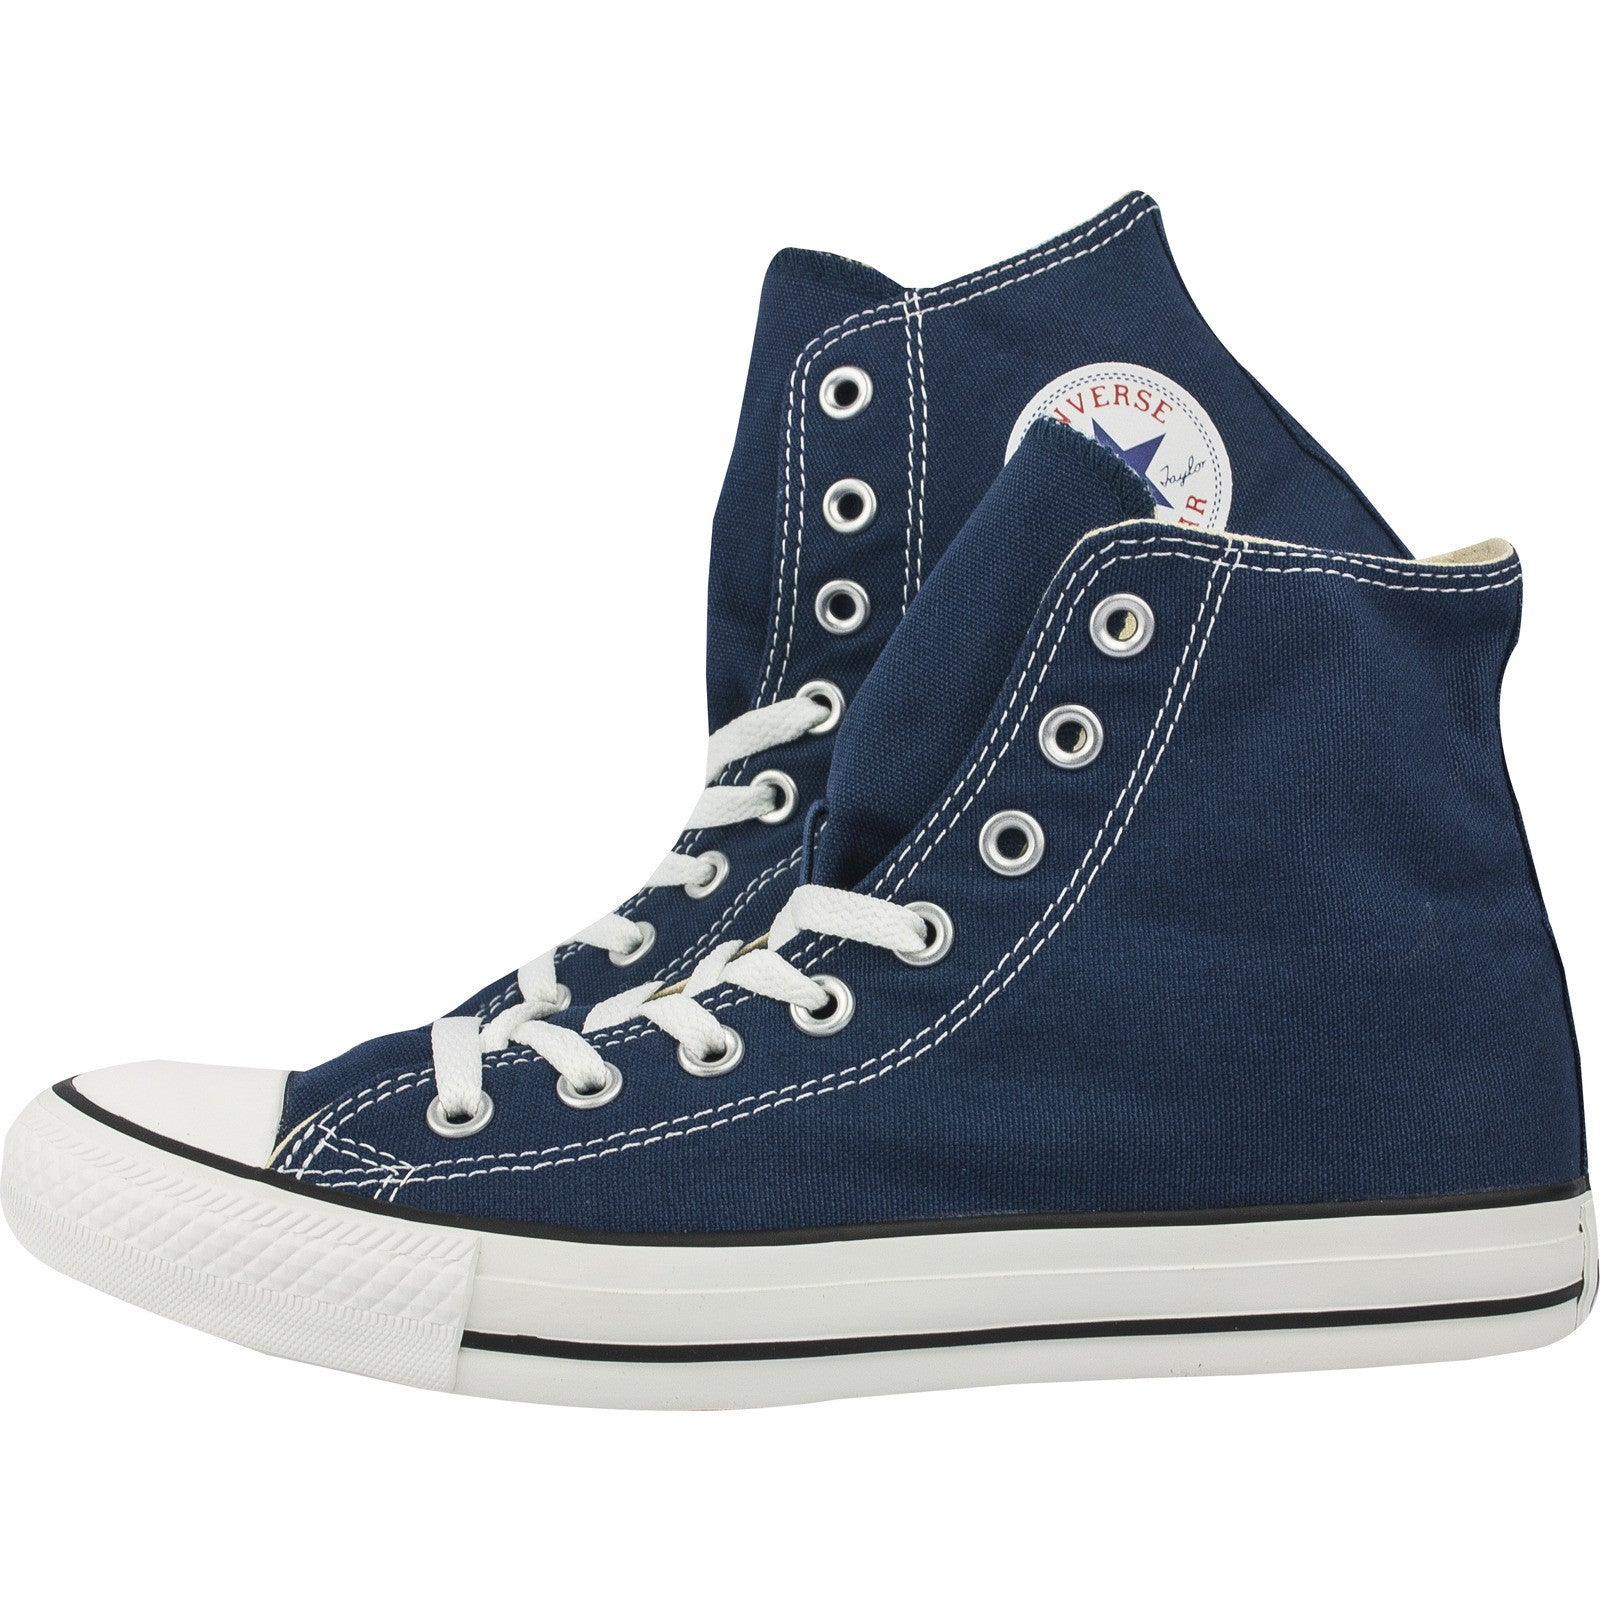 abd951549fa6a Converse Classic Chuck Taylor All Star Navy Blue HI High M9622C Trainer  Sneaker NEW ...